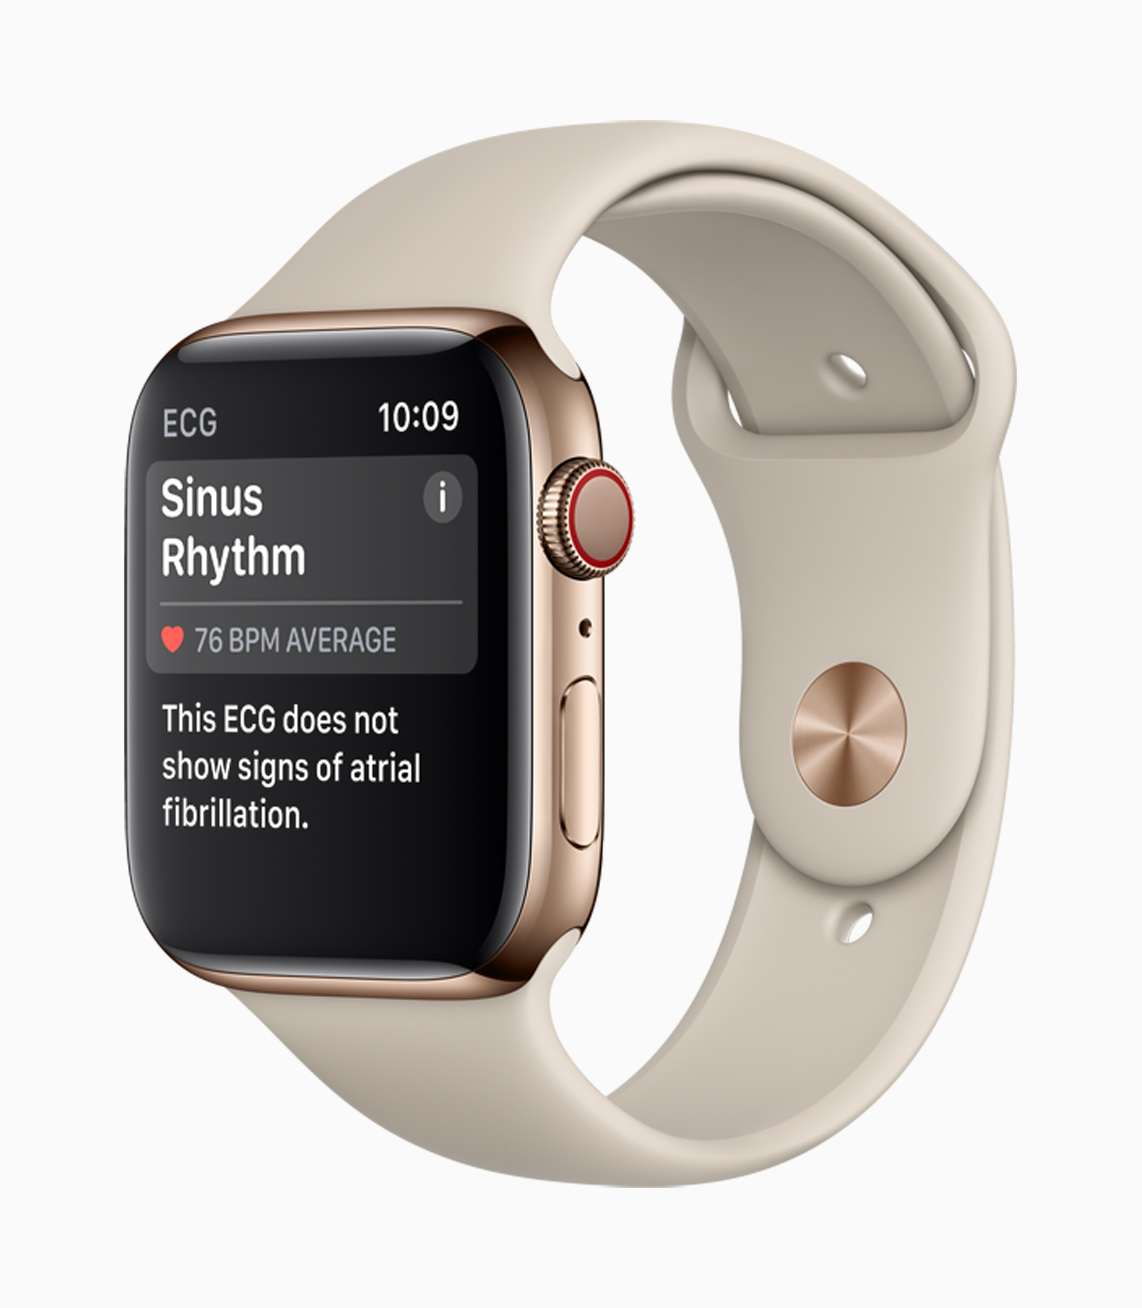 Apple Watch Series 4, Sinus Rhythm